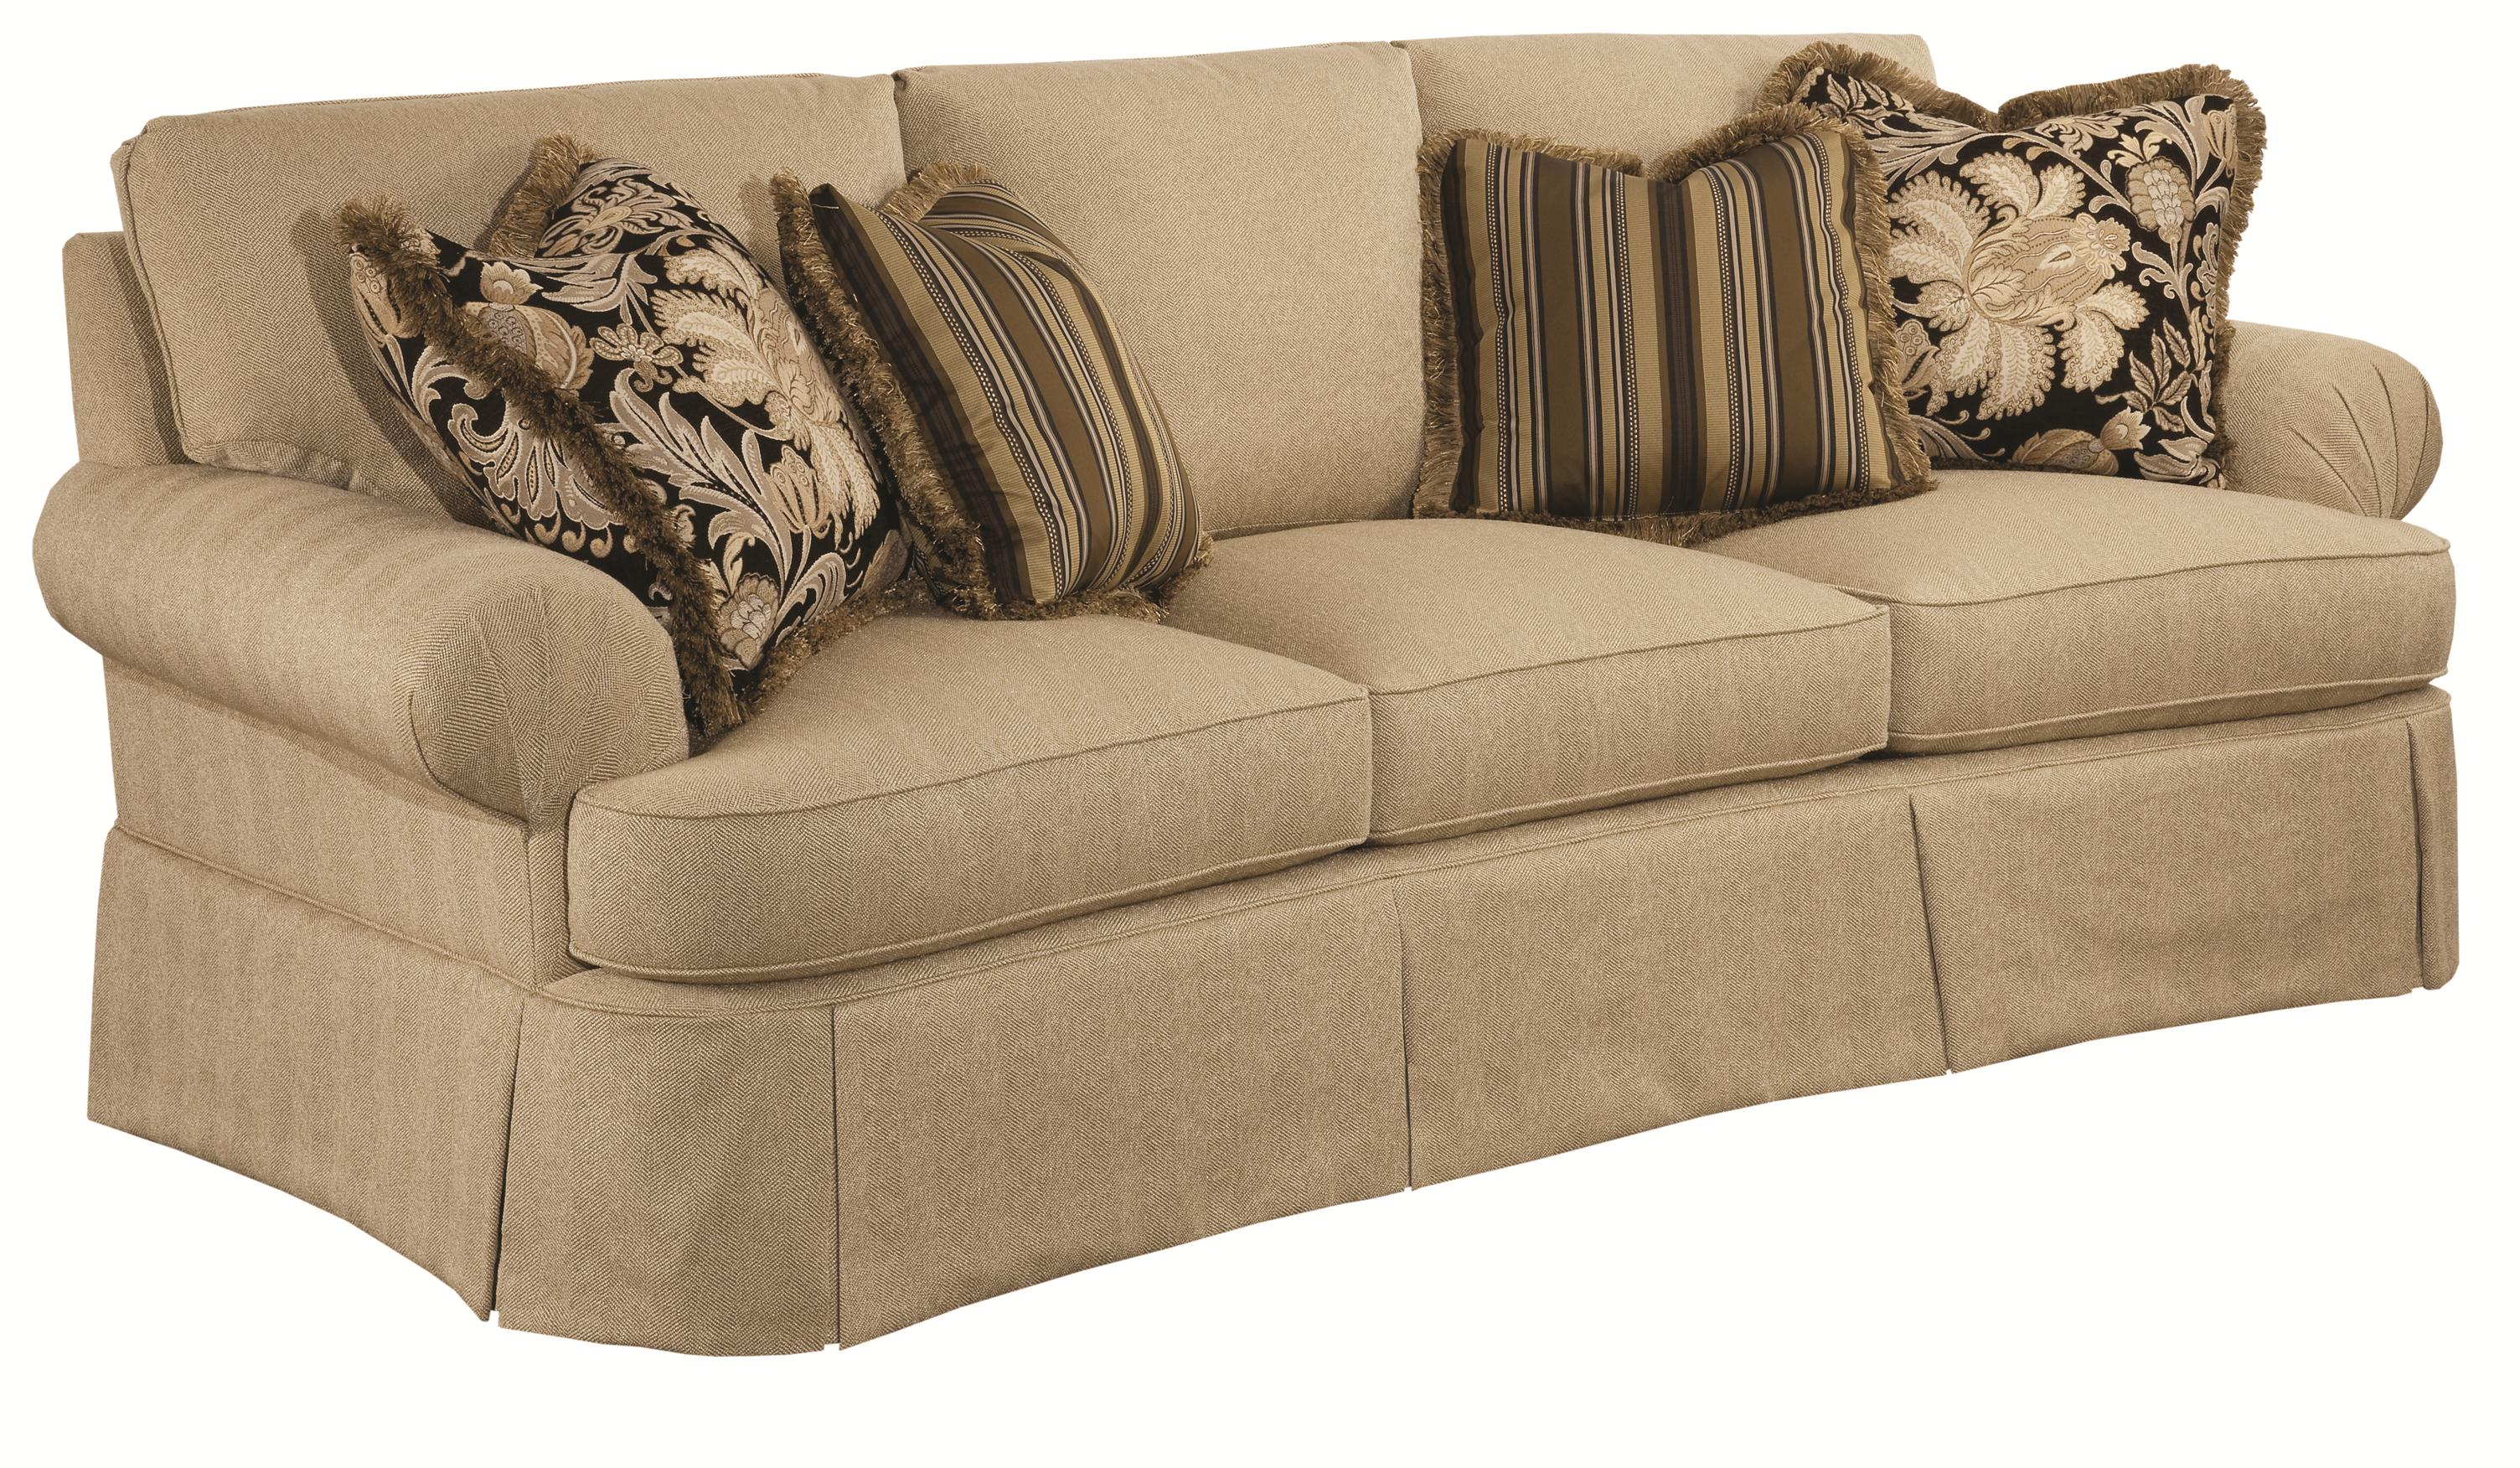 Traditional Conversation Sofa With Waterfall Skirts And Fan Pleated Arms By Kincaid Furniture